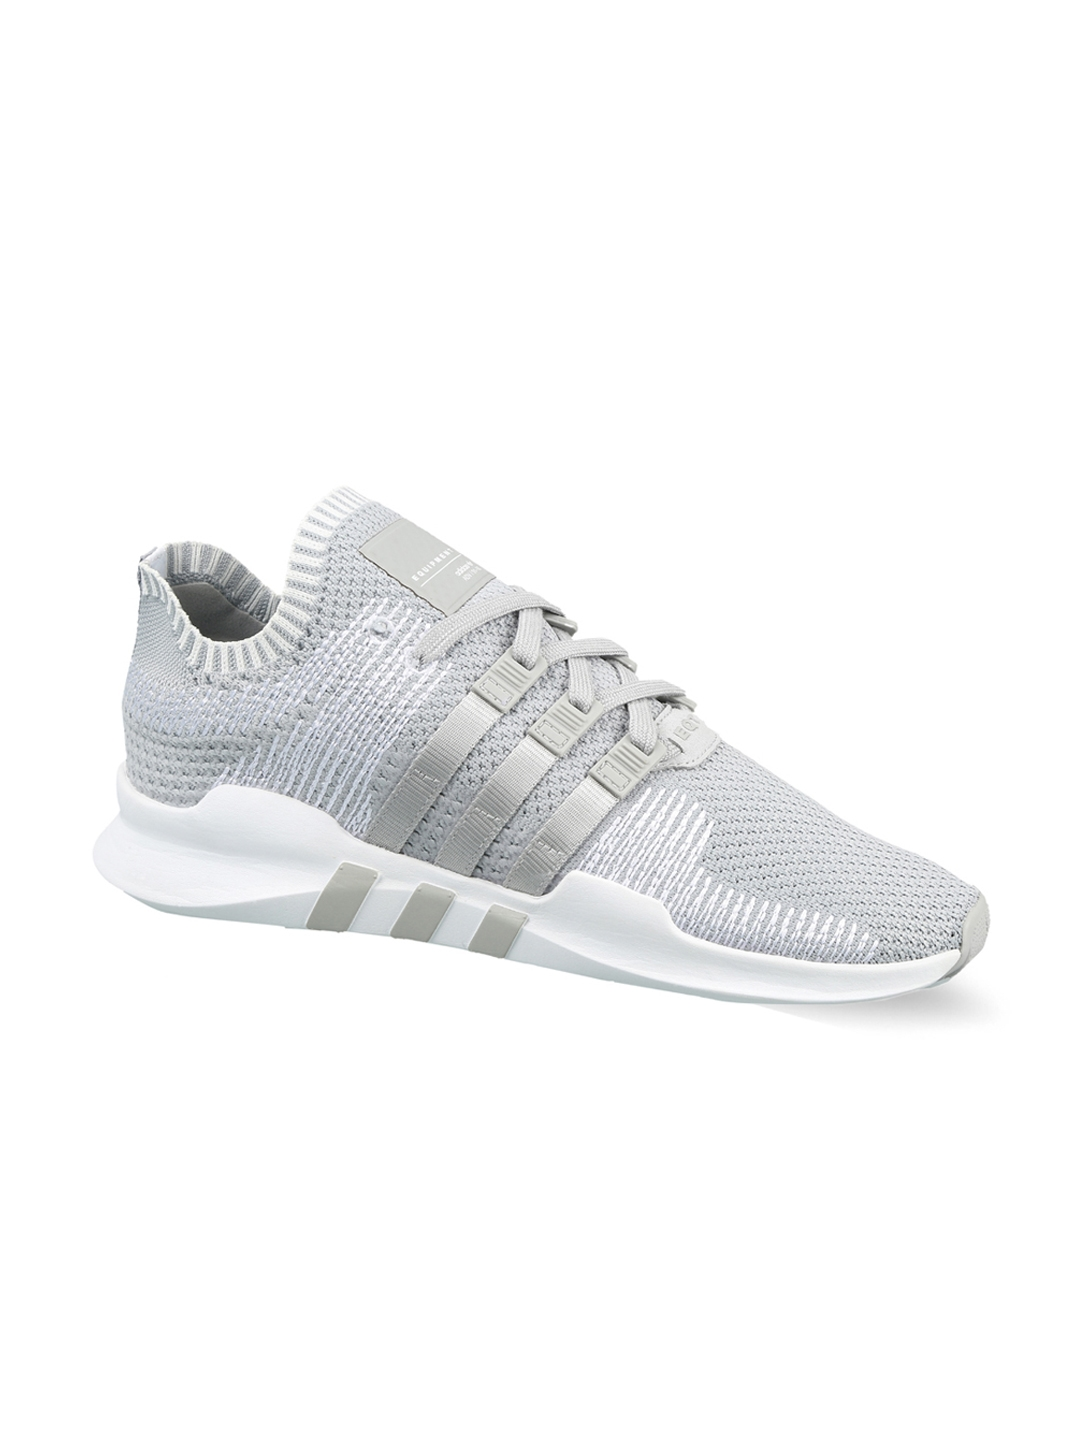 5a30aef36cc3 Buy Adidas Originals Men Grey EQT Support Adv PK Sneakers - Casual ...